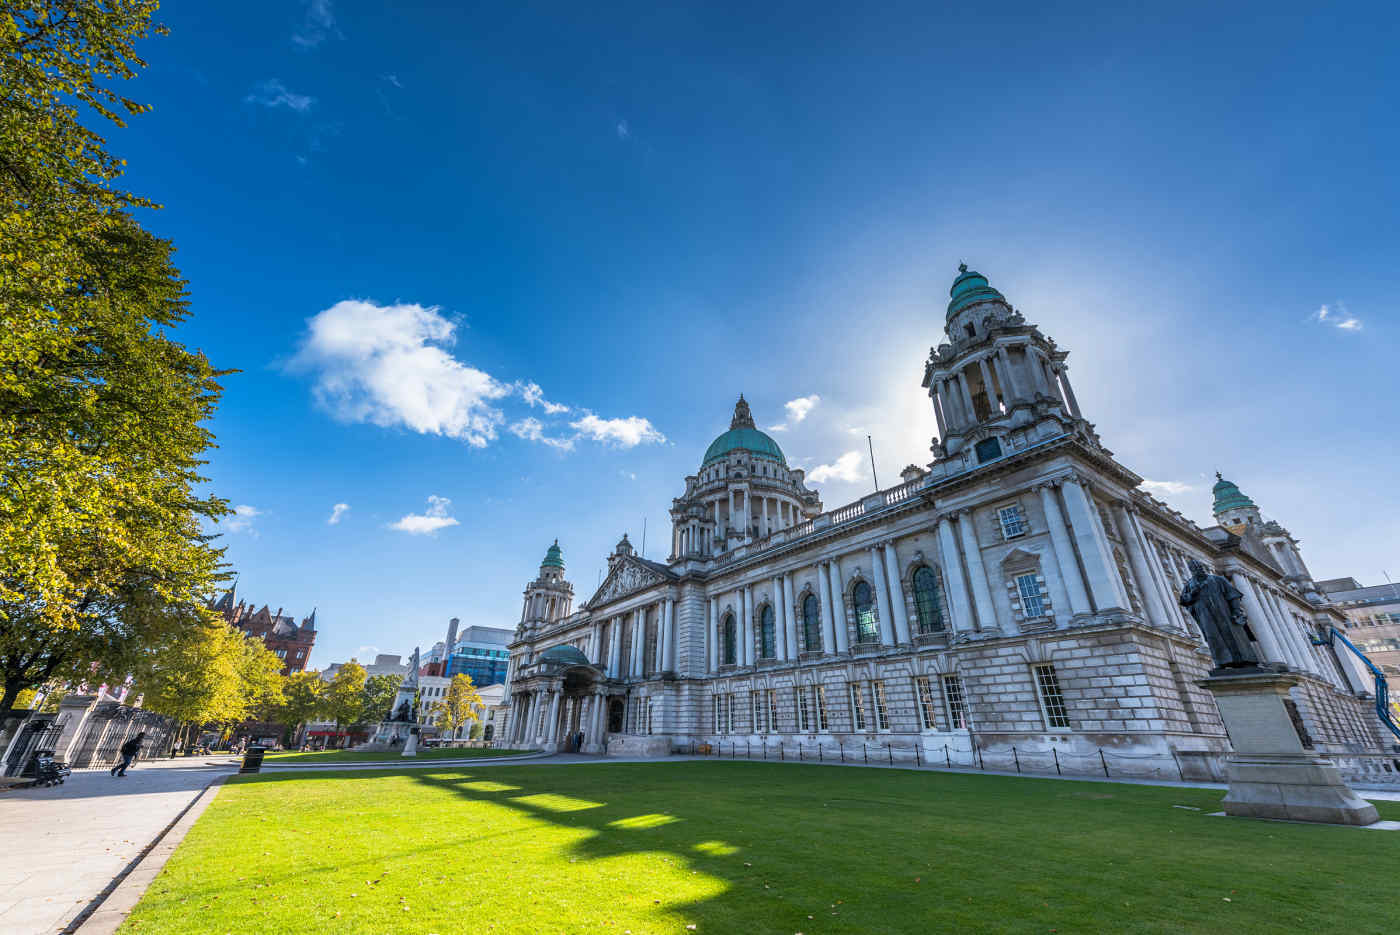 City Hall in Belfast, Northern Ireland